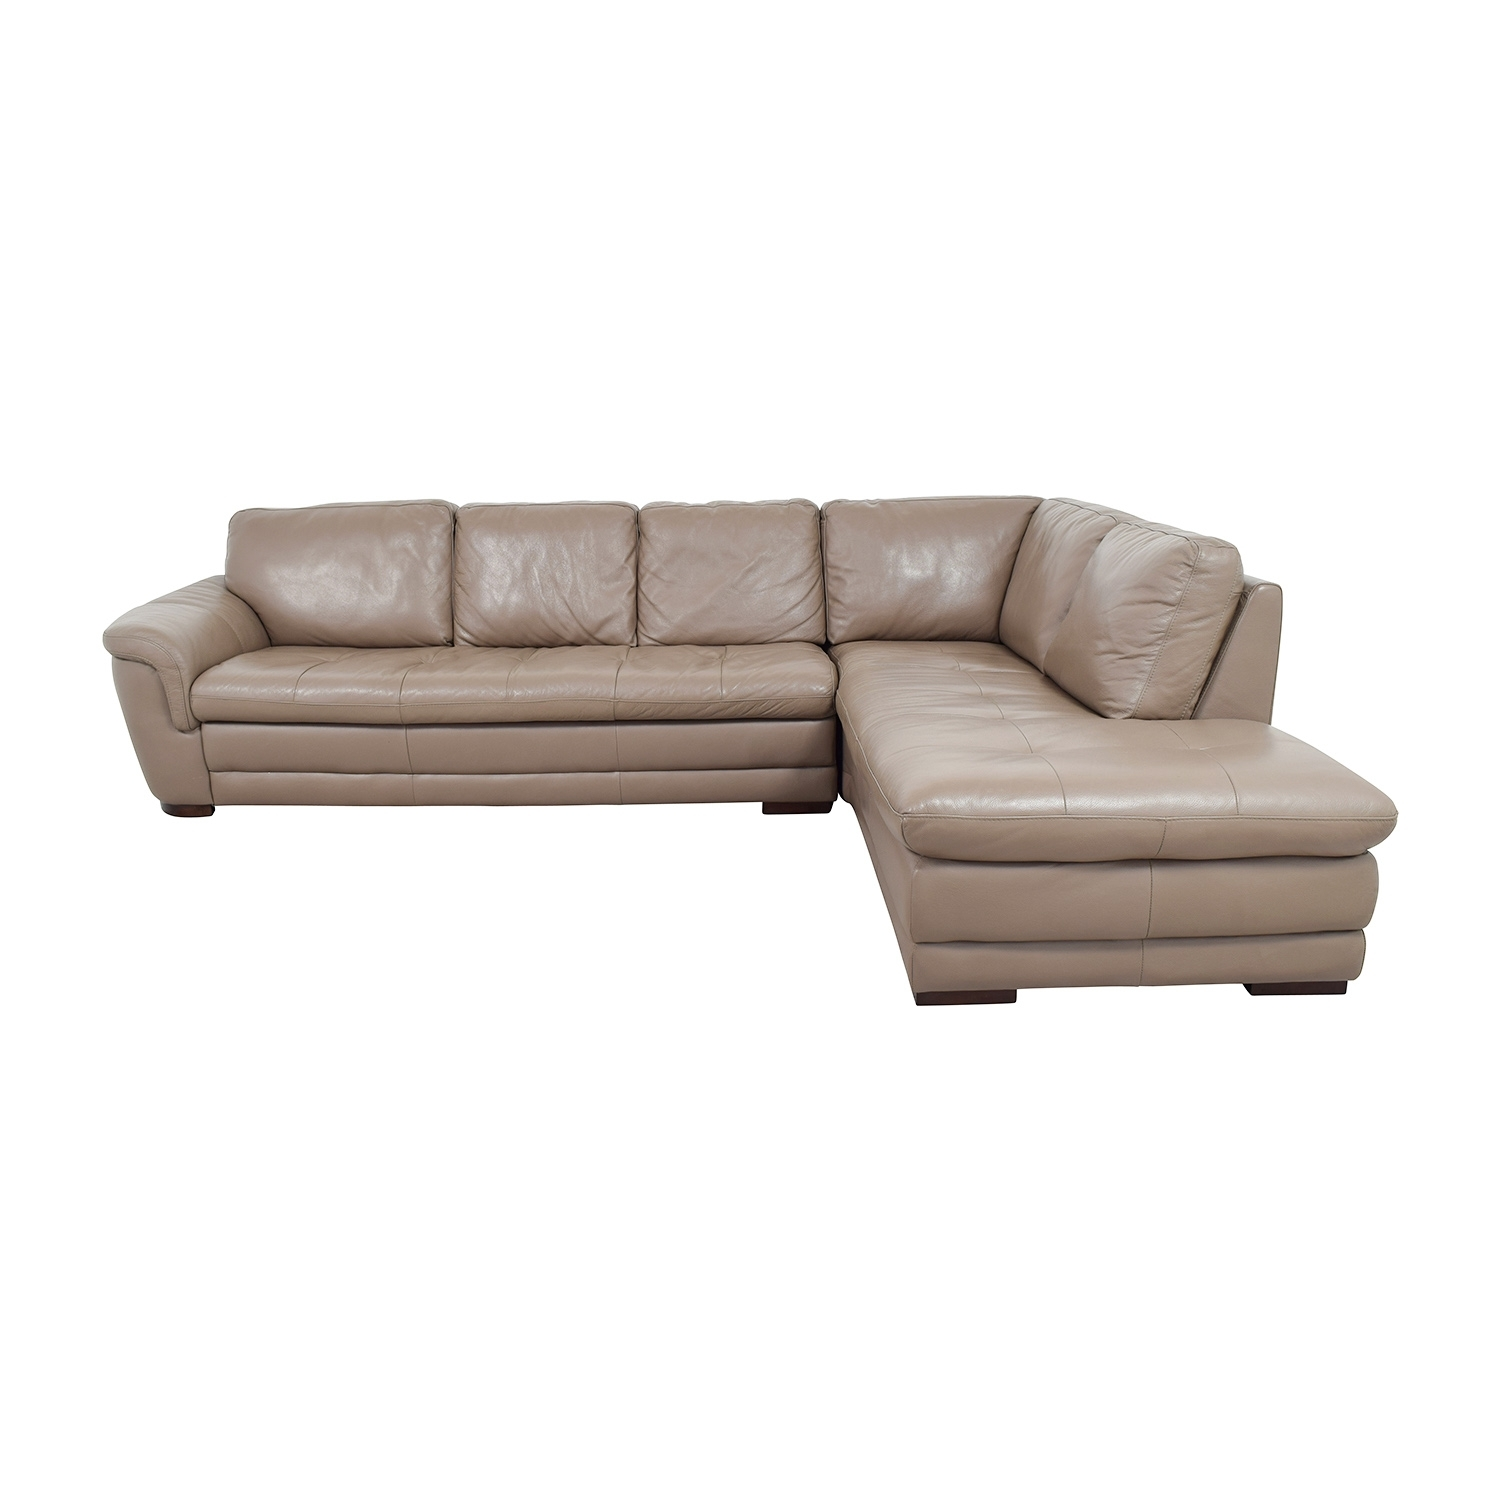 74% Off - Raymour And Flanigan Raymour & Flanigan Tan Tufted Leather throughout Sectional Sofas At Raymour And Flanigan (Image 5 of 15)